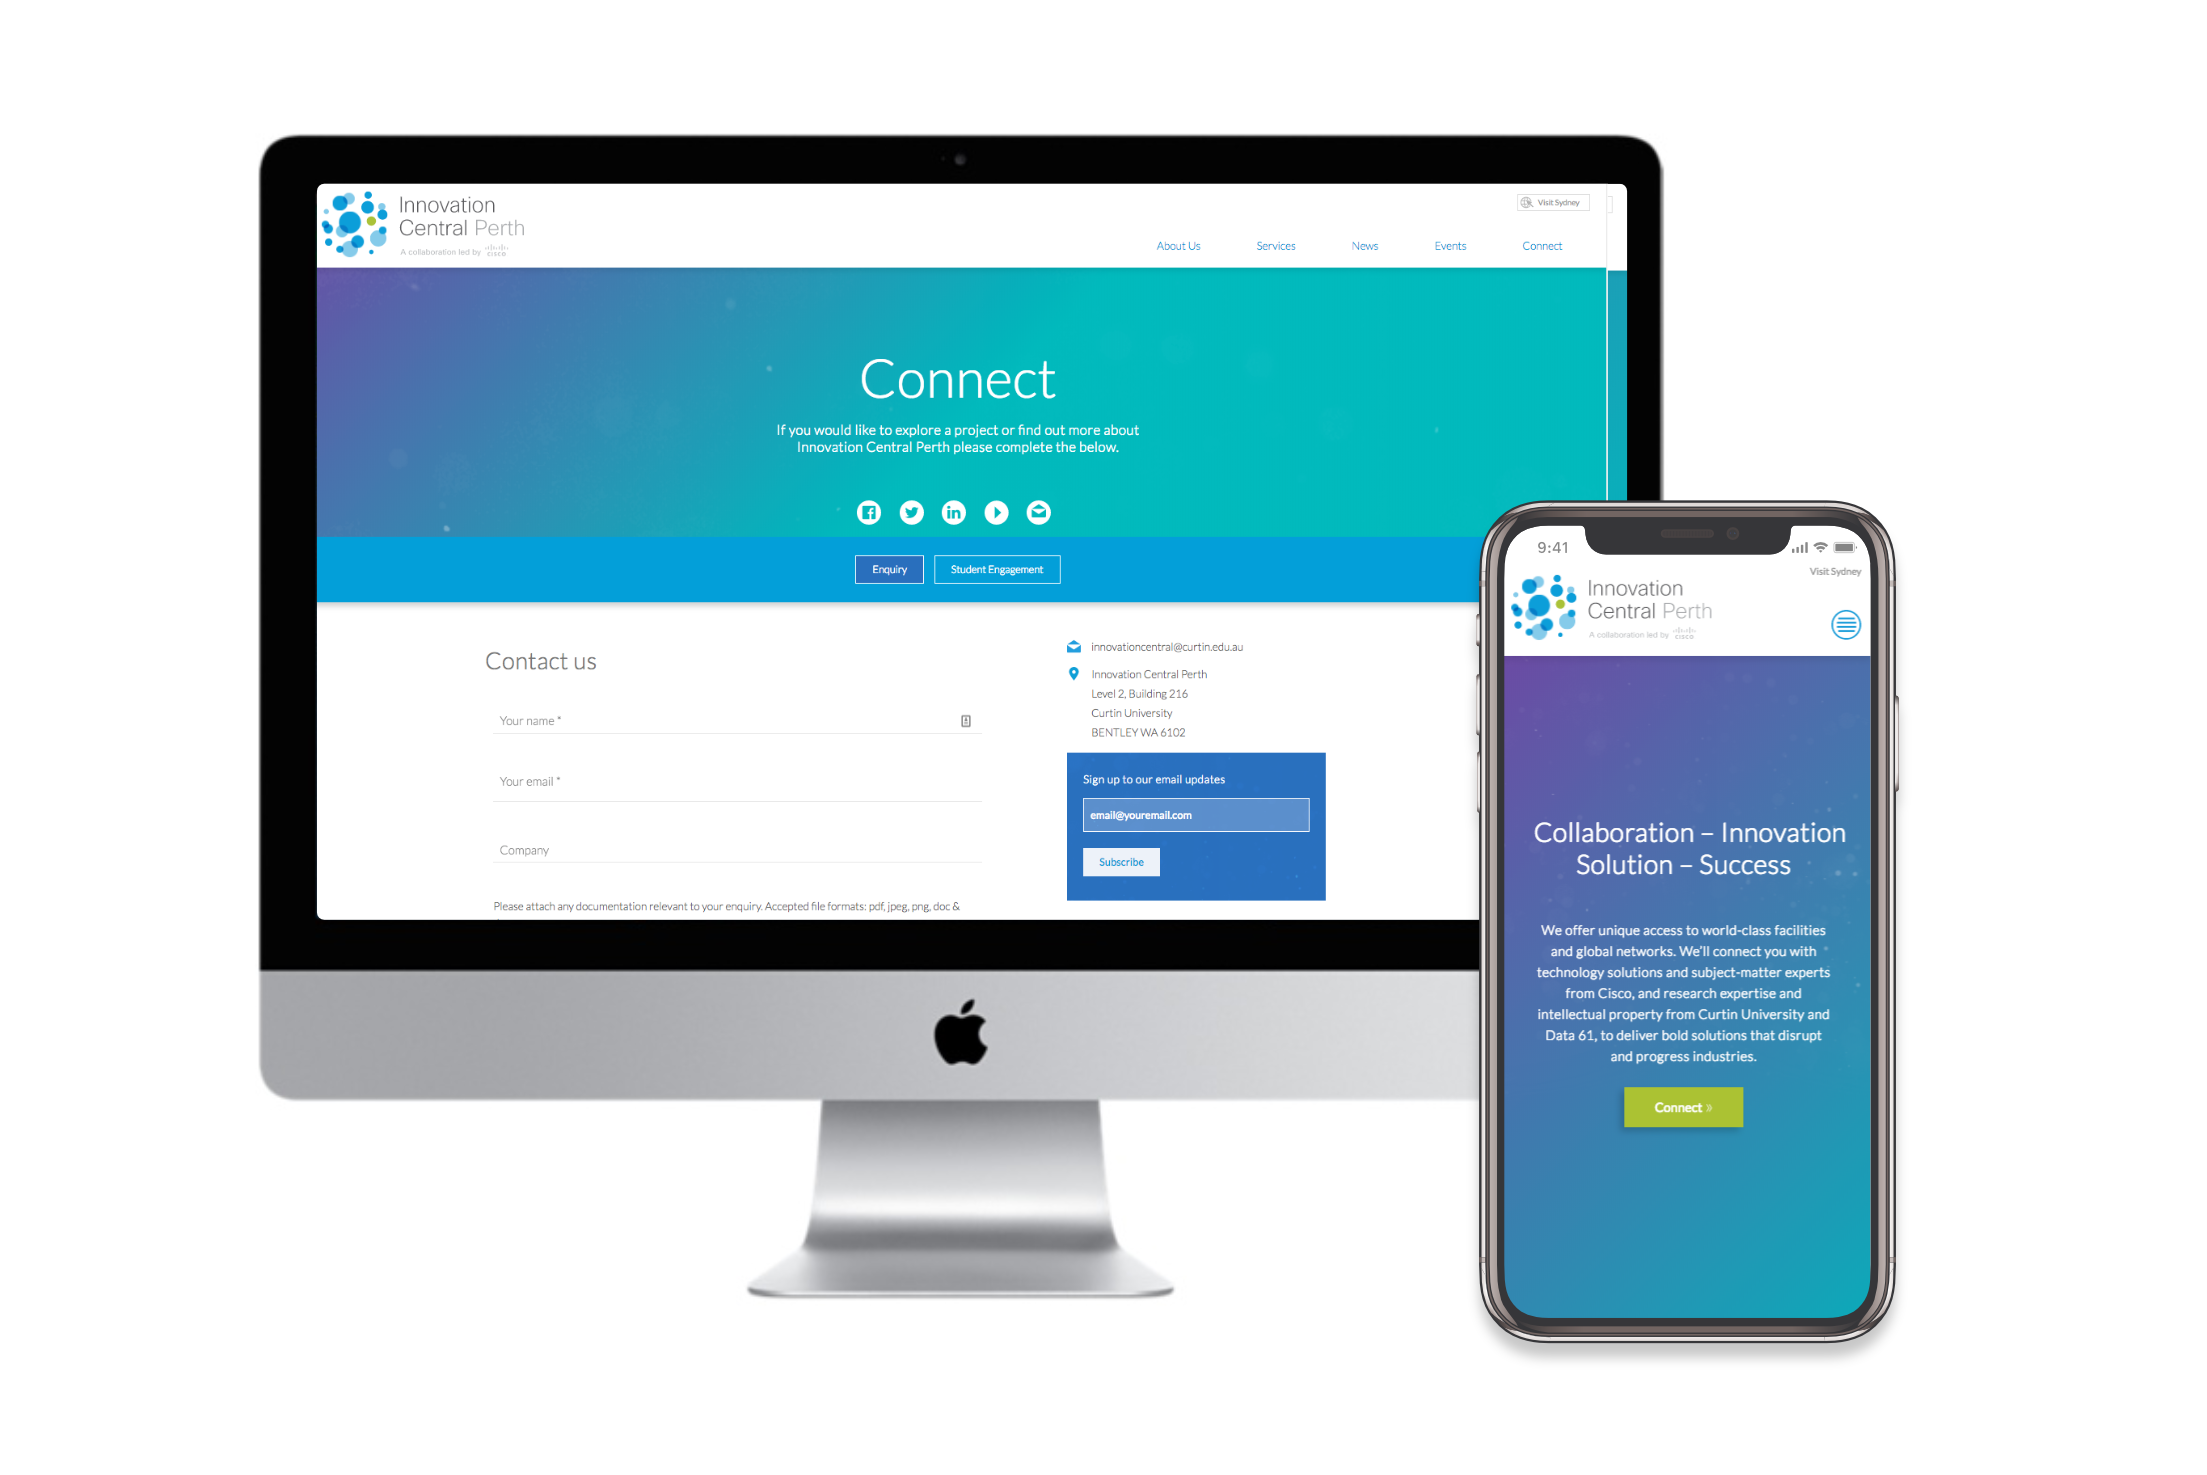 Innovation Central Perth – UI design by Charlotte Clark